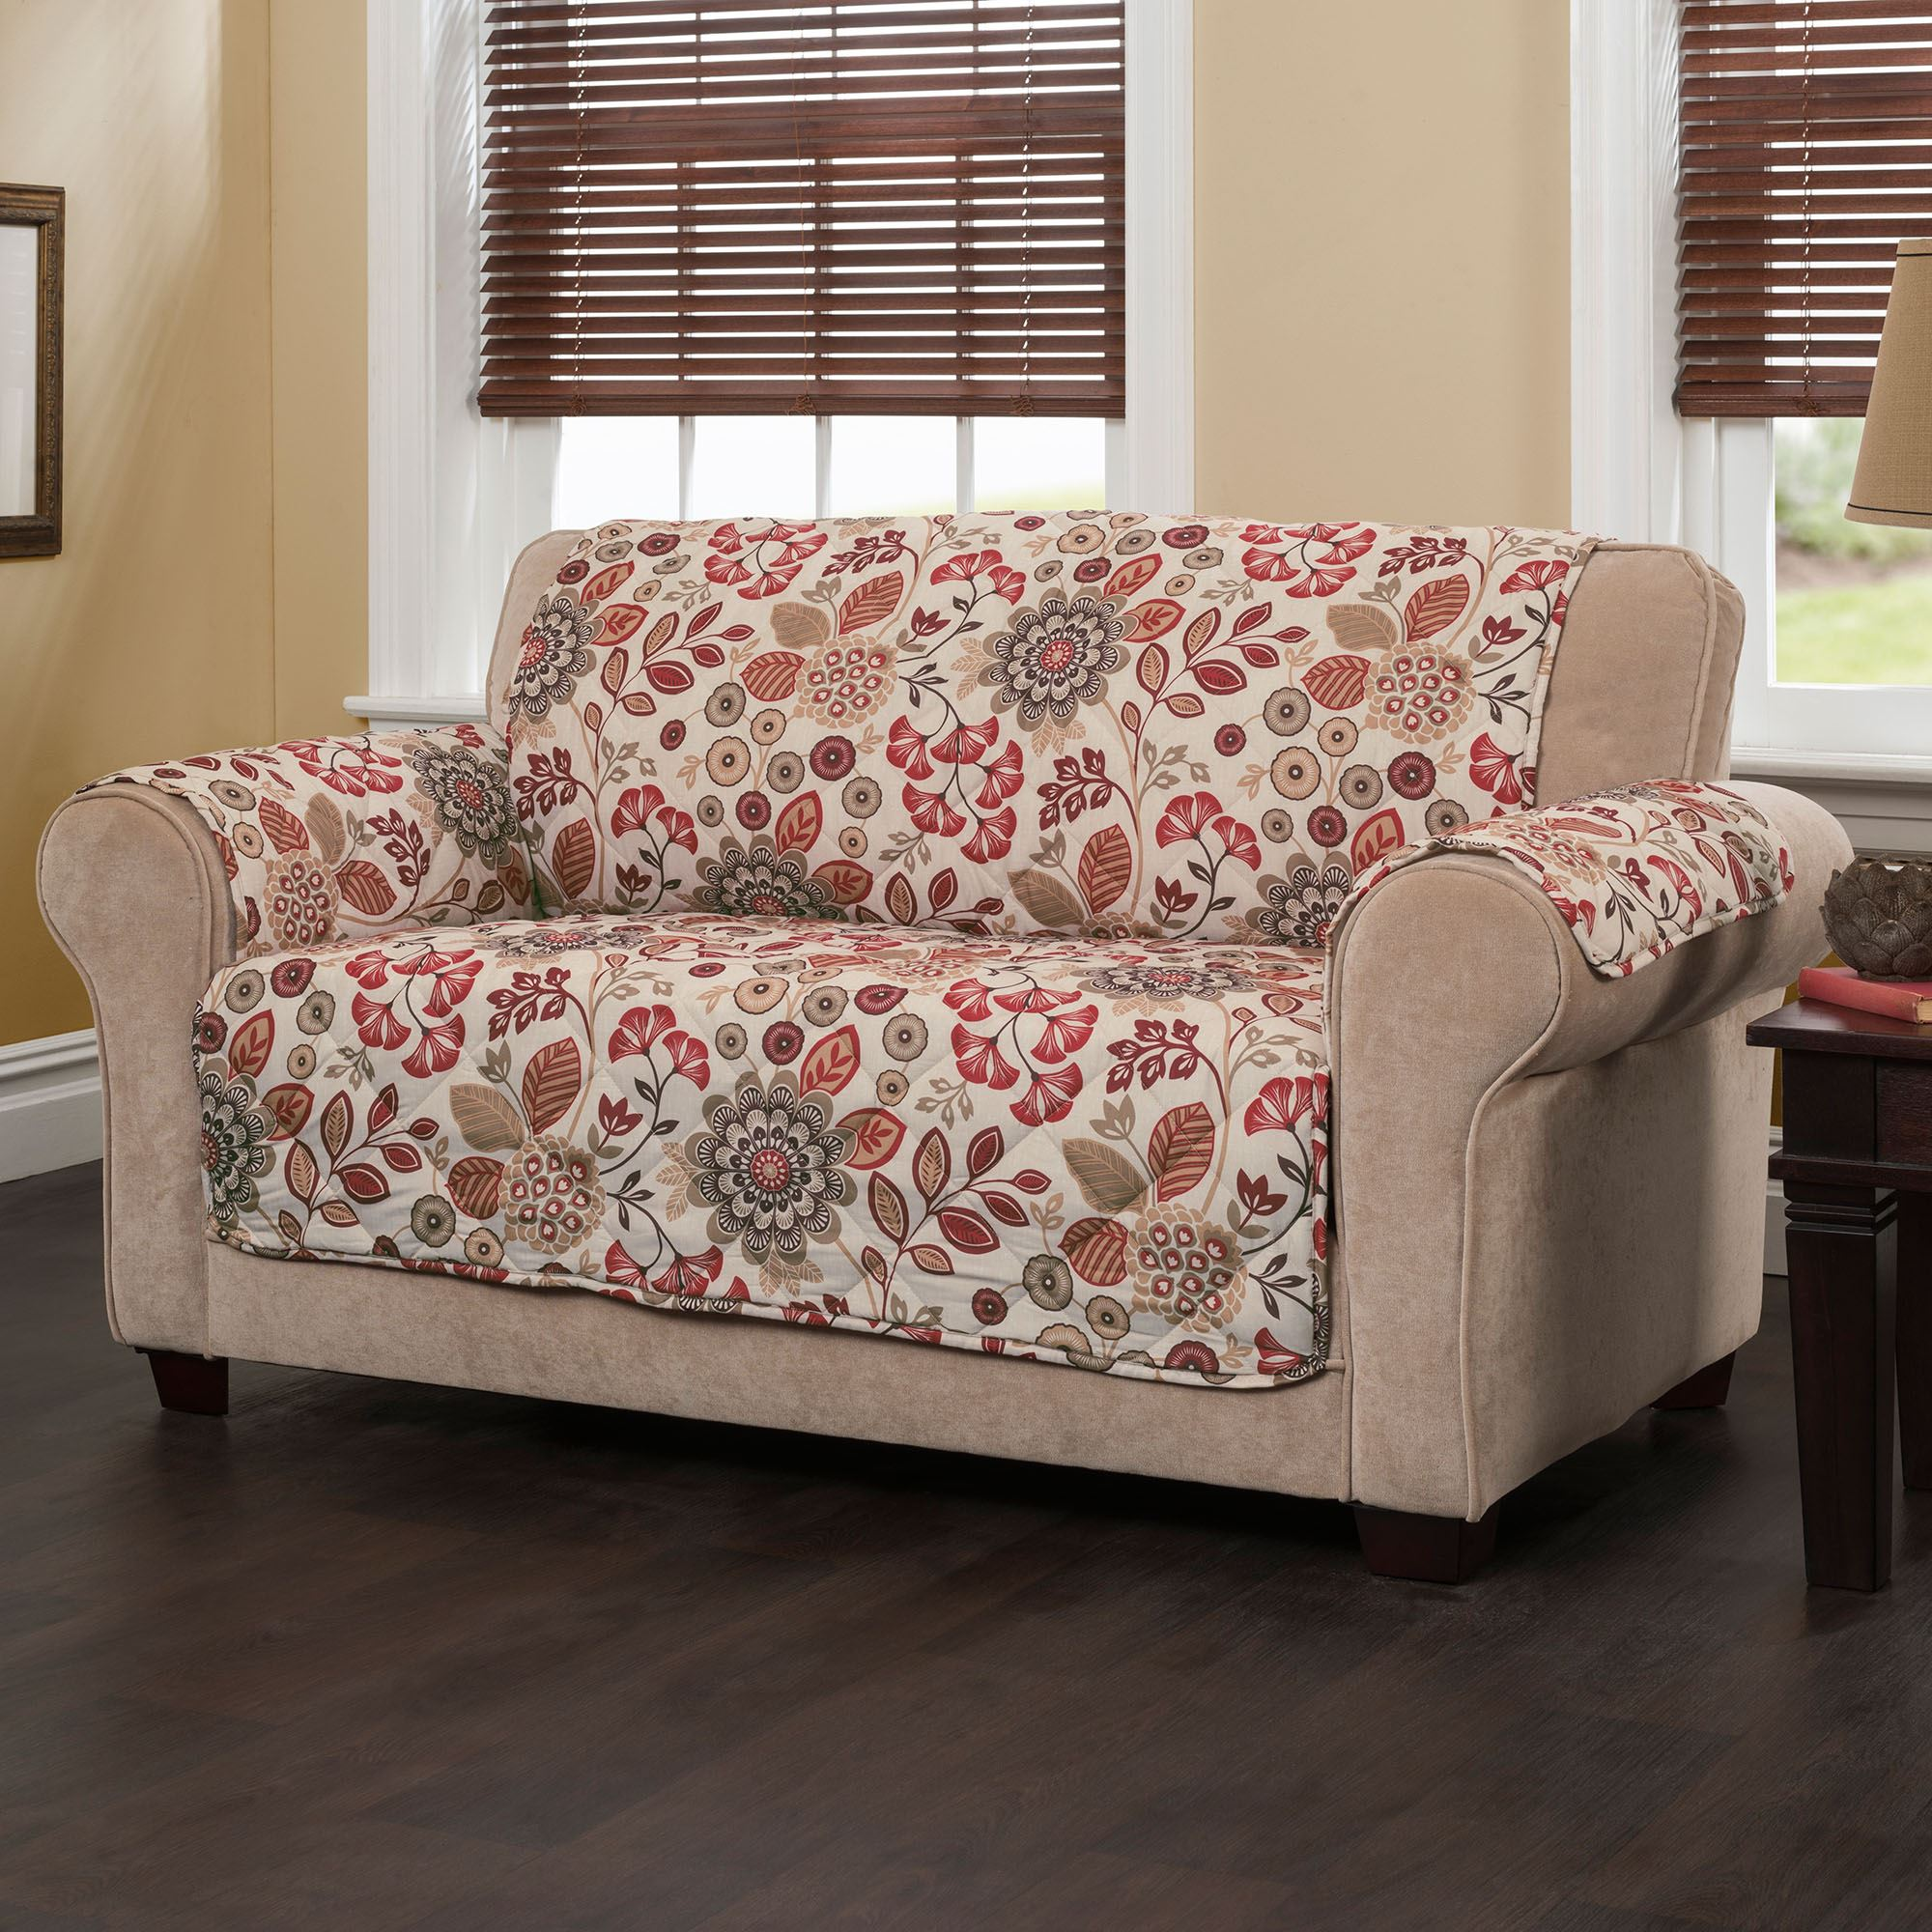 Fine Harleen Ember Glow Quilted Floral Sofa Furniture Protector Gmtry Best Dining Table And Chair Ideas Images Gmtryco